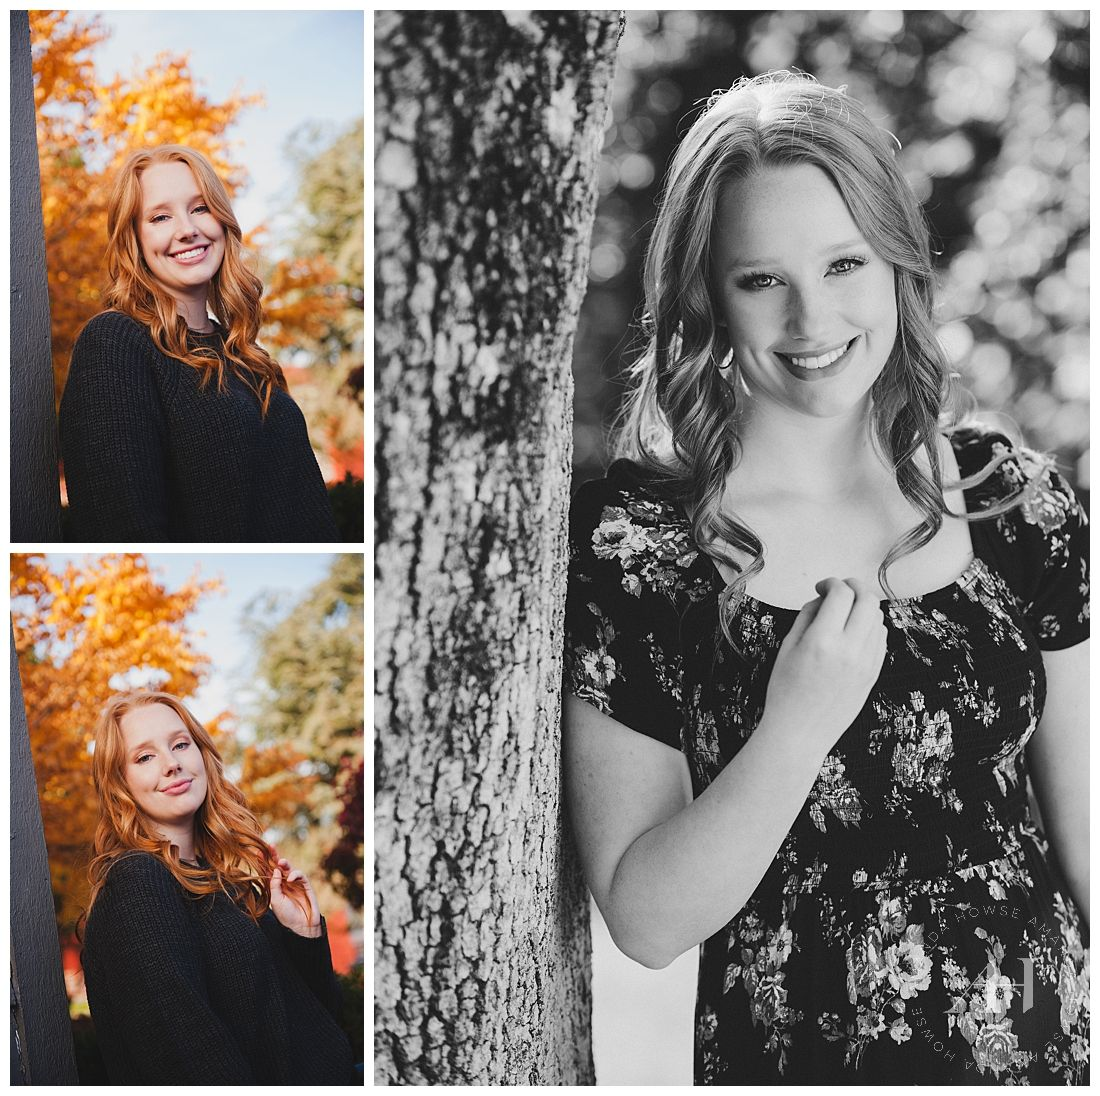 Best Colors For Senior Pictures